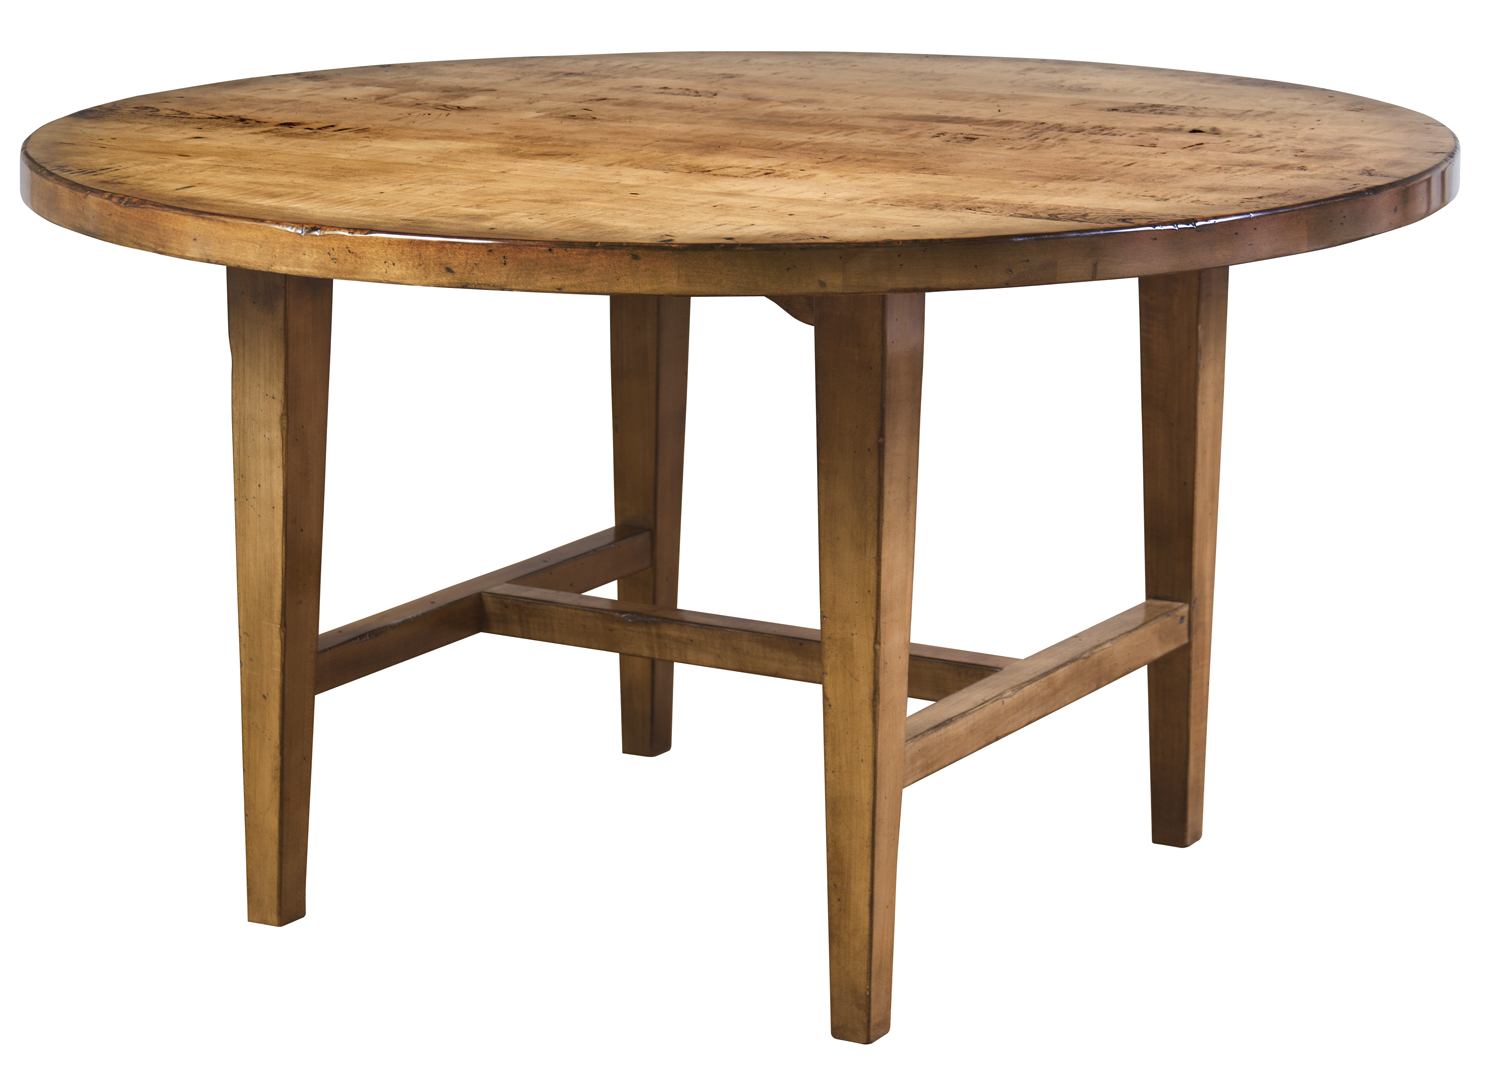 Round Stillwell Table Image